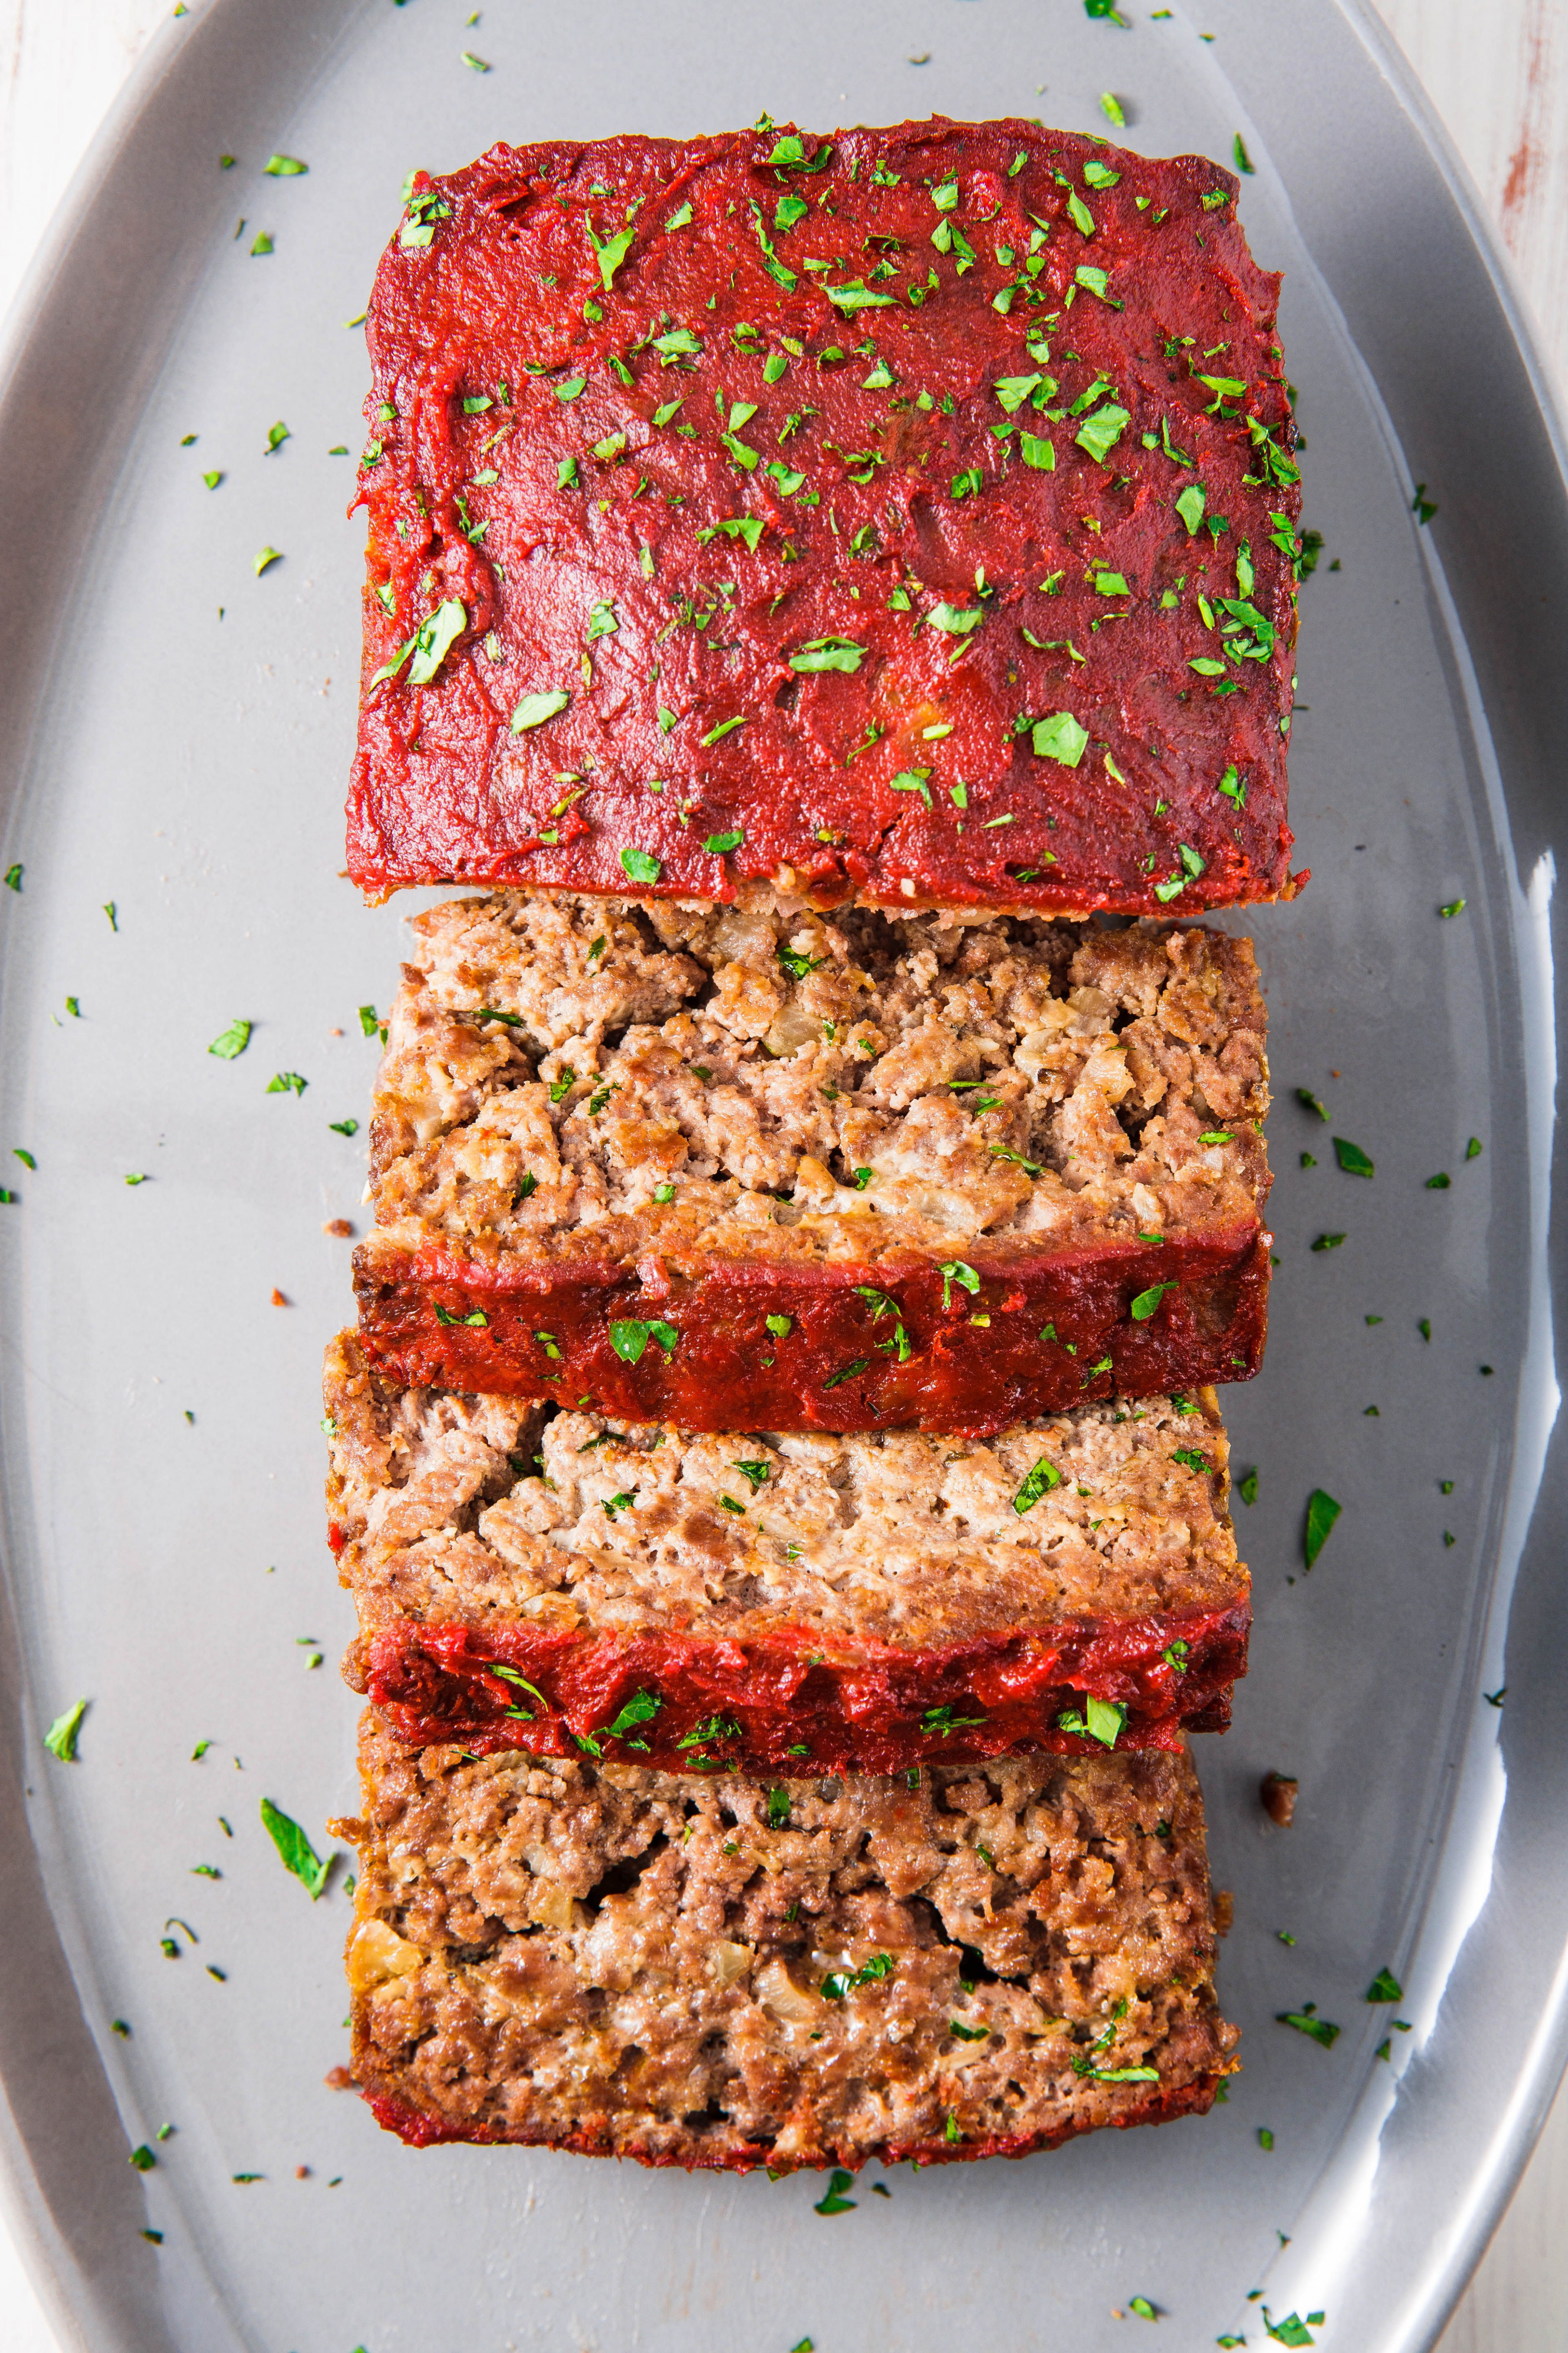 12 Healthy Meatloaf Recipes - How To Make Healthy Meatloaf ...